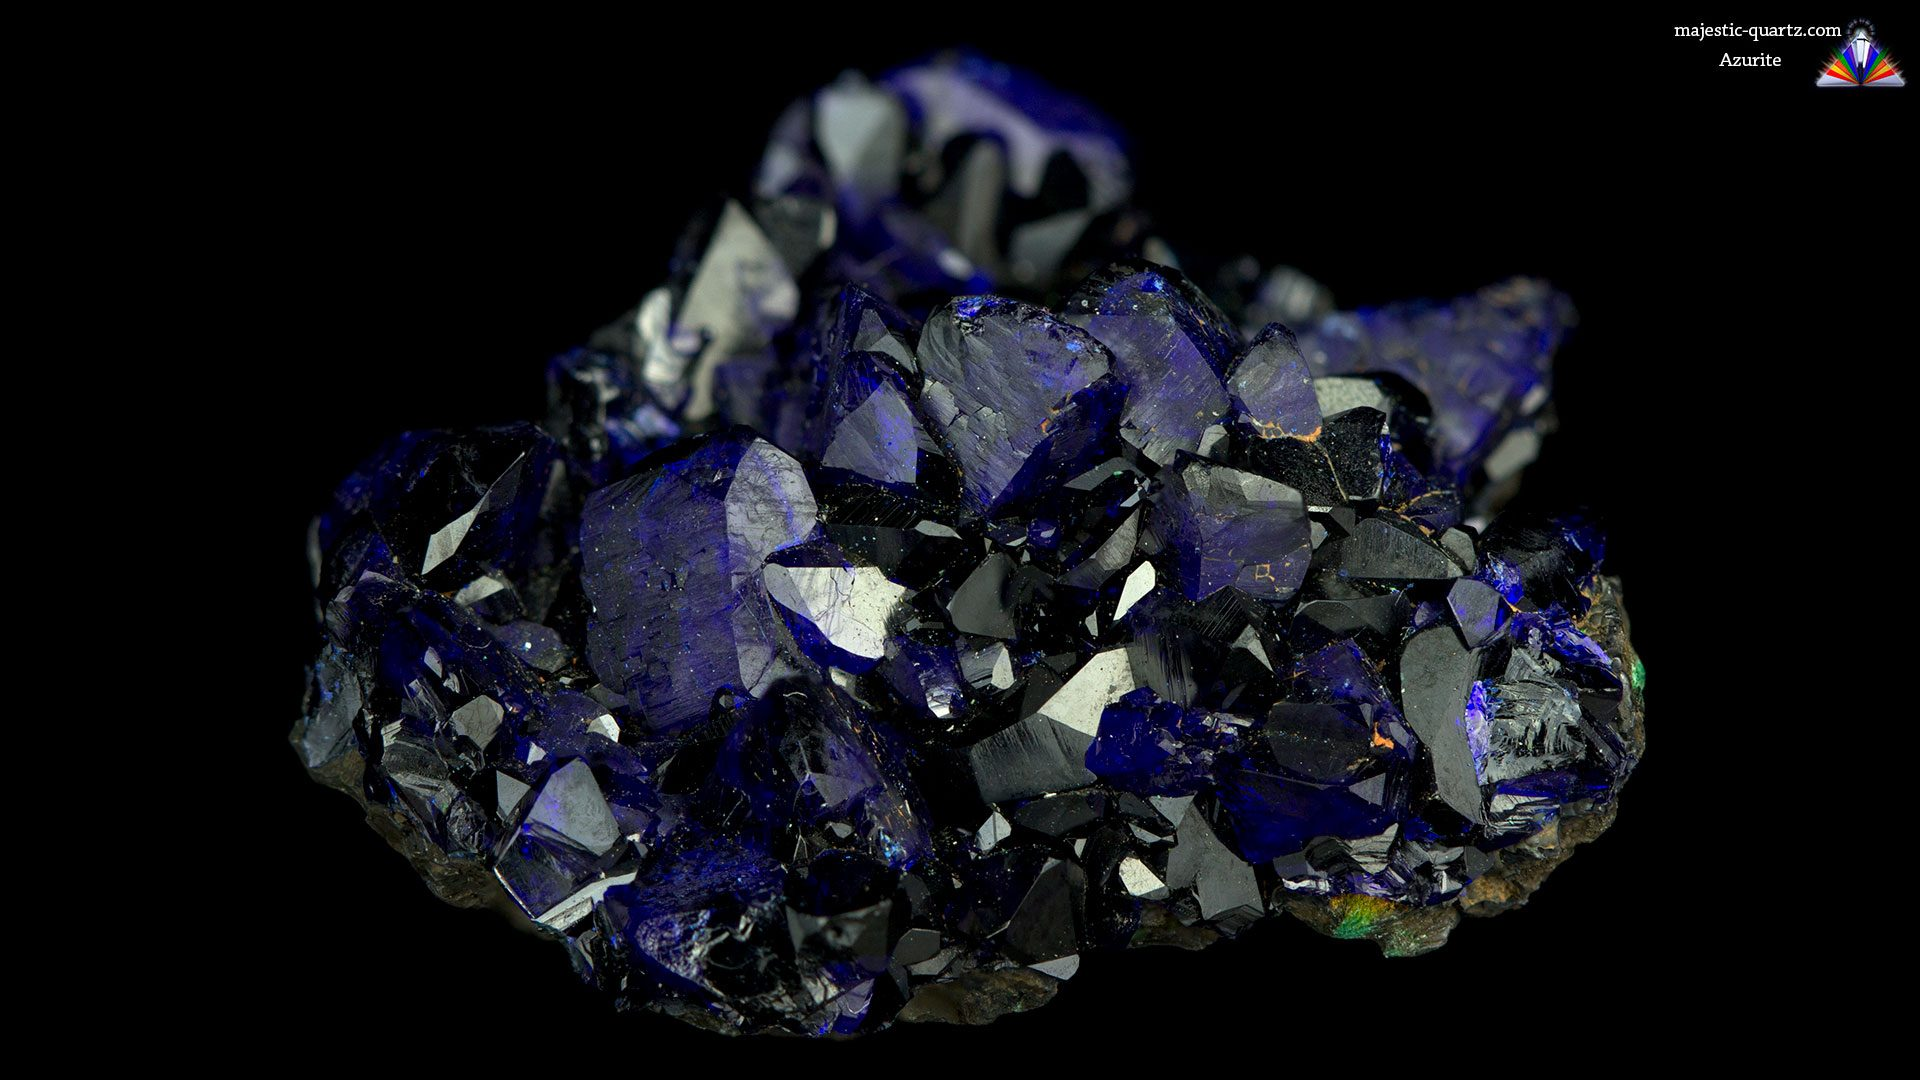 Azurite Crystal Specimen - Photograph by Anthony Bradford